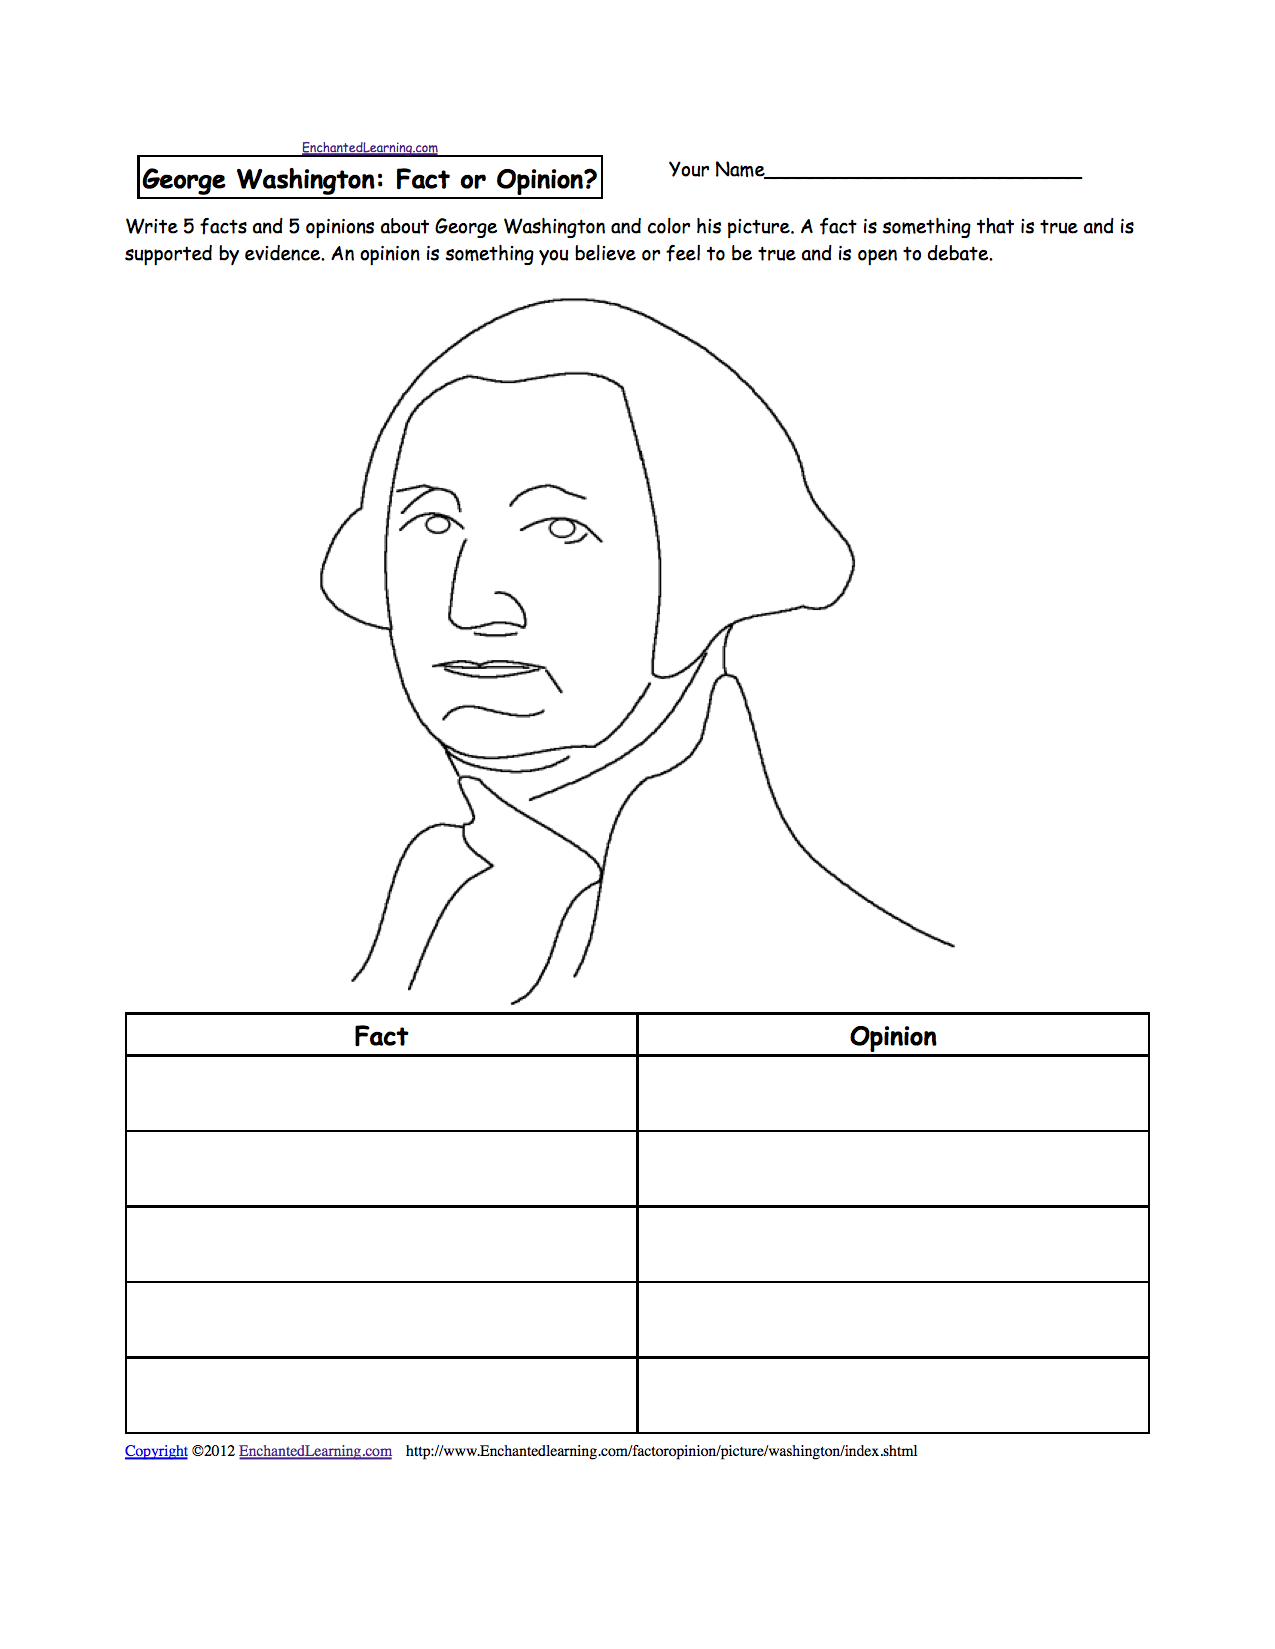 worksheet Child Support Worksheet Washington activities worksheets and crafts for presidents day enchanted learning software